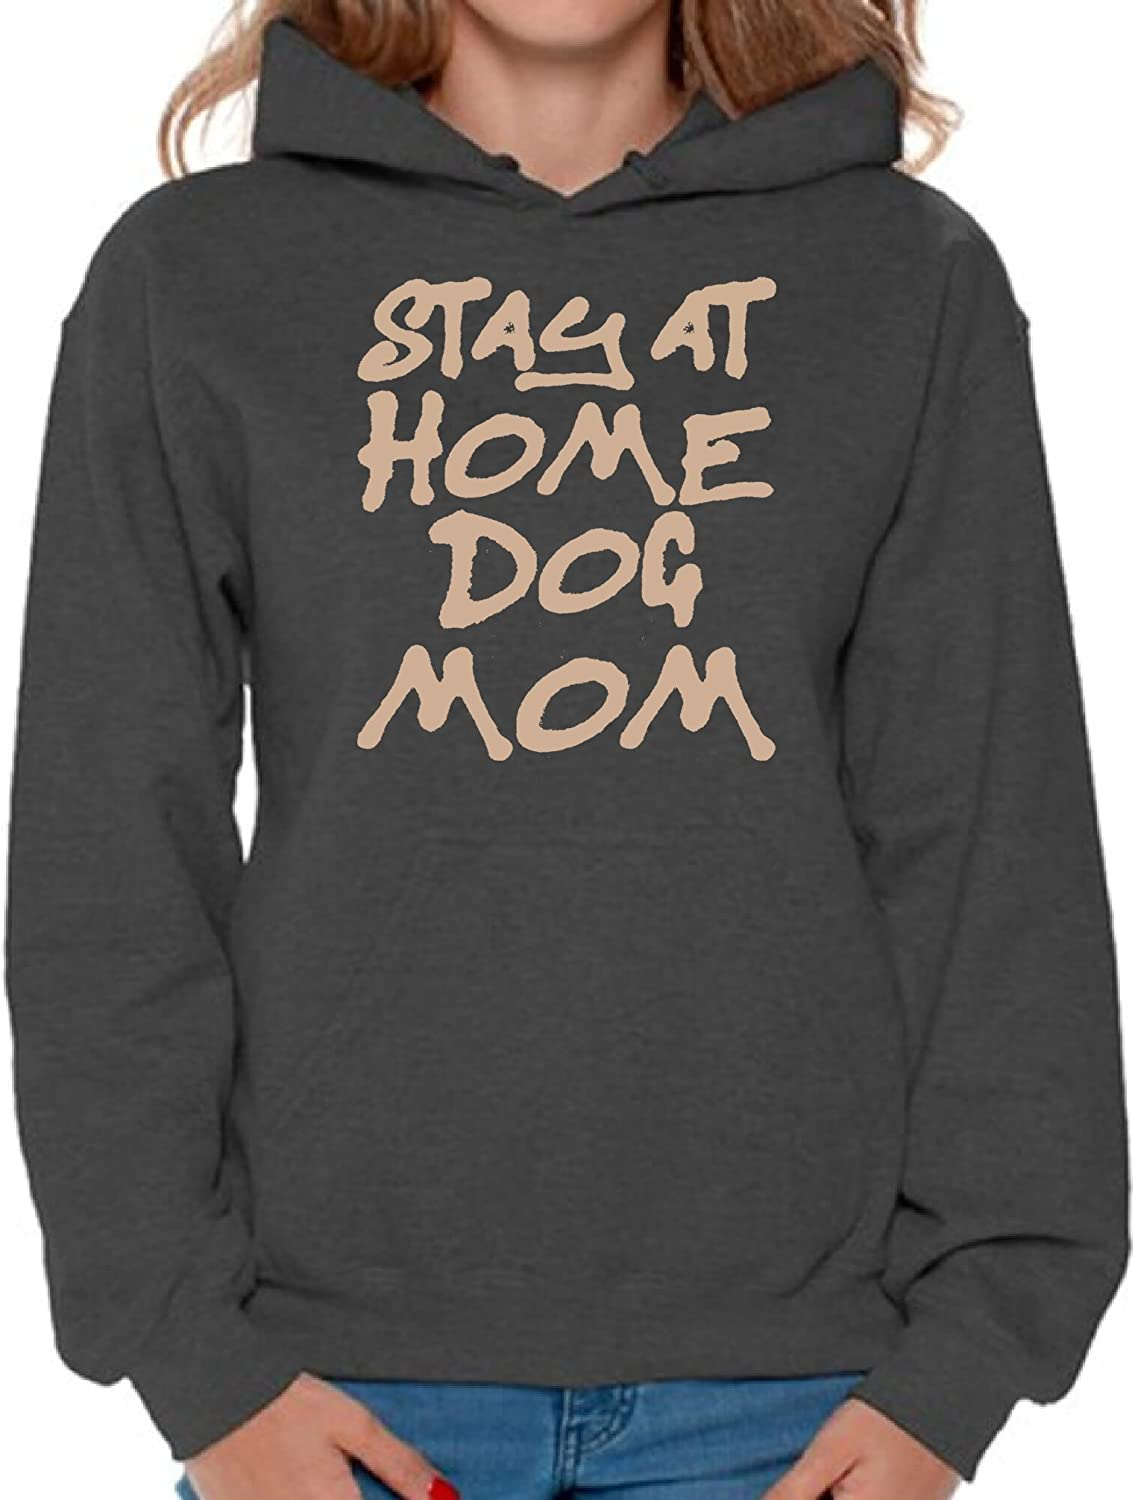 Awkward Styles Women's Stay at Home Dog Mom Graphic Hoodie Tops for Dog Lovers